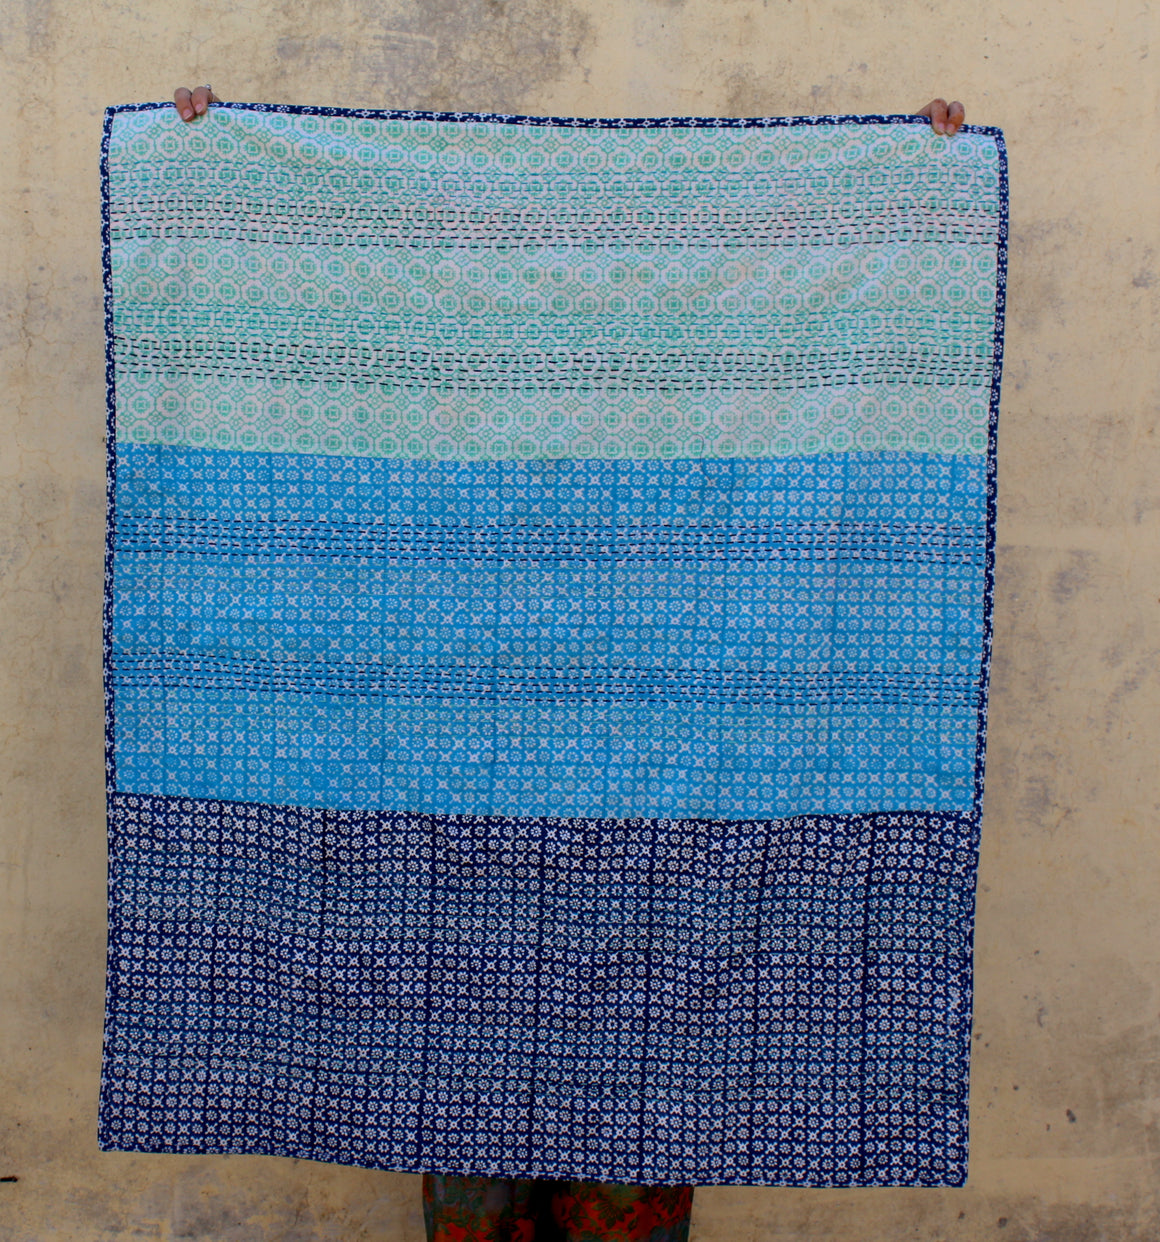 Kantha Stitch Upcycled Couch Throw in Blues